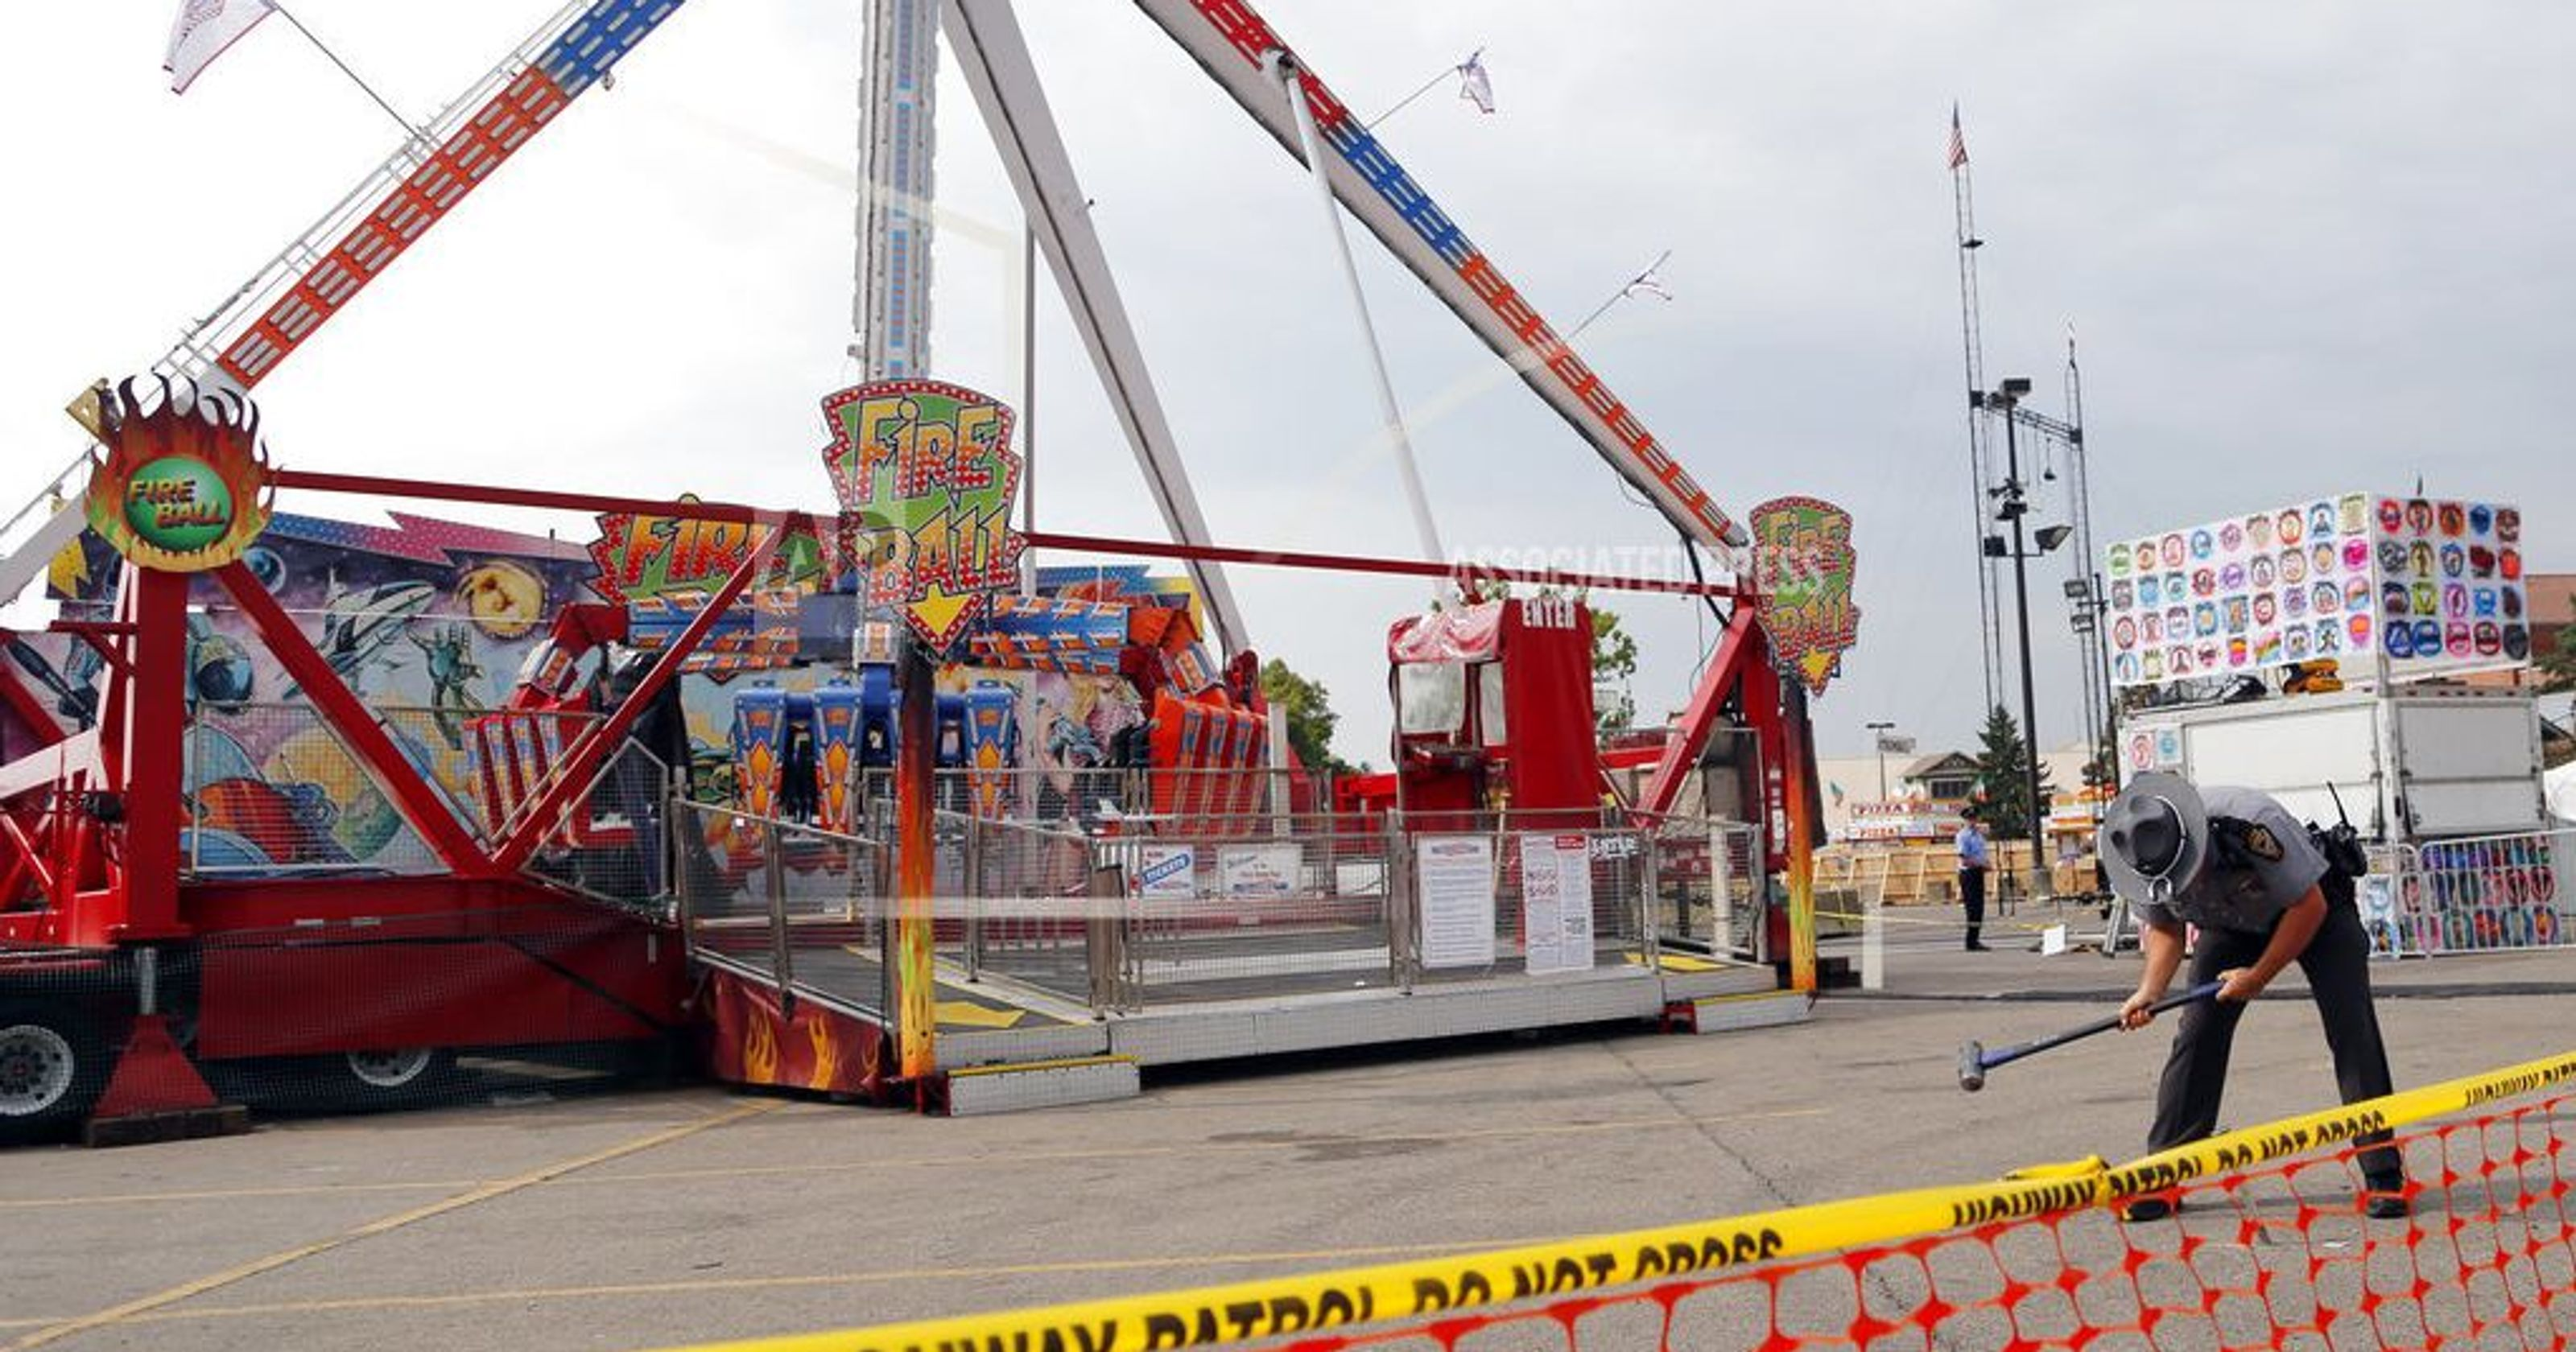 Ohio State Fair officials work to reassure visitors about safety